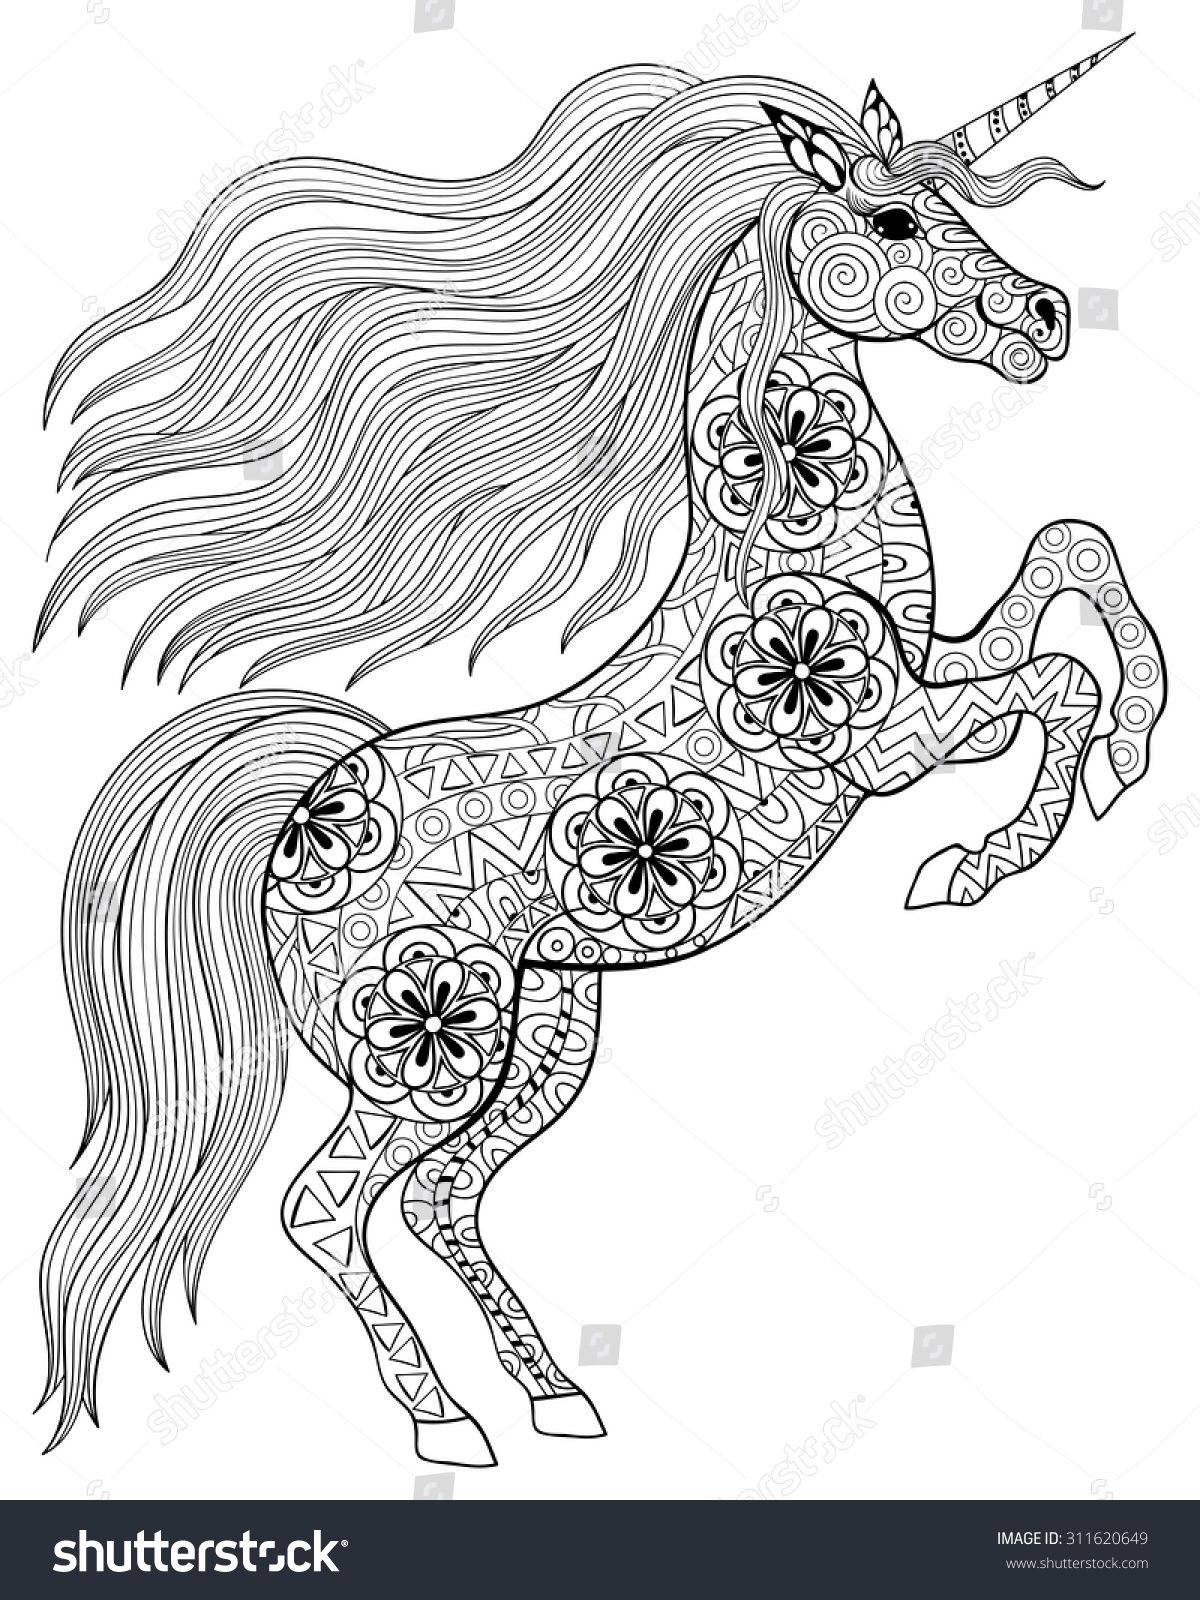 Stock Vector Hand Drawn Magic Unicorn For Adult